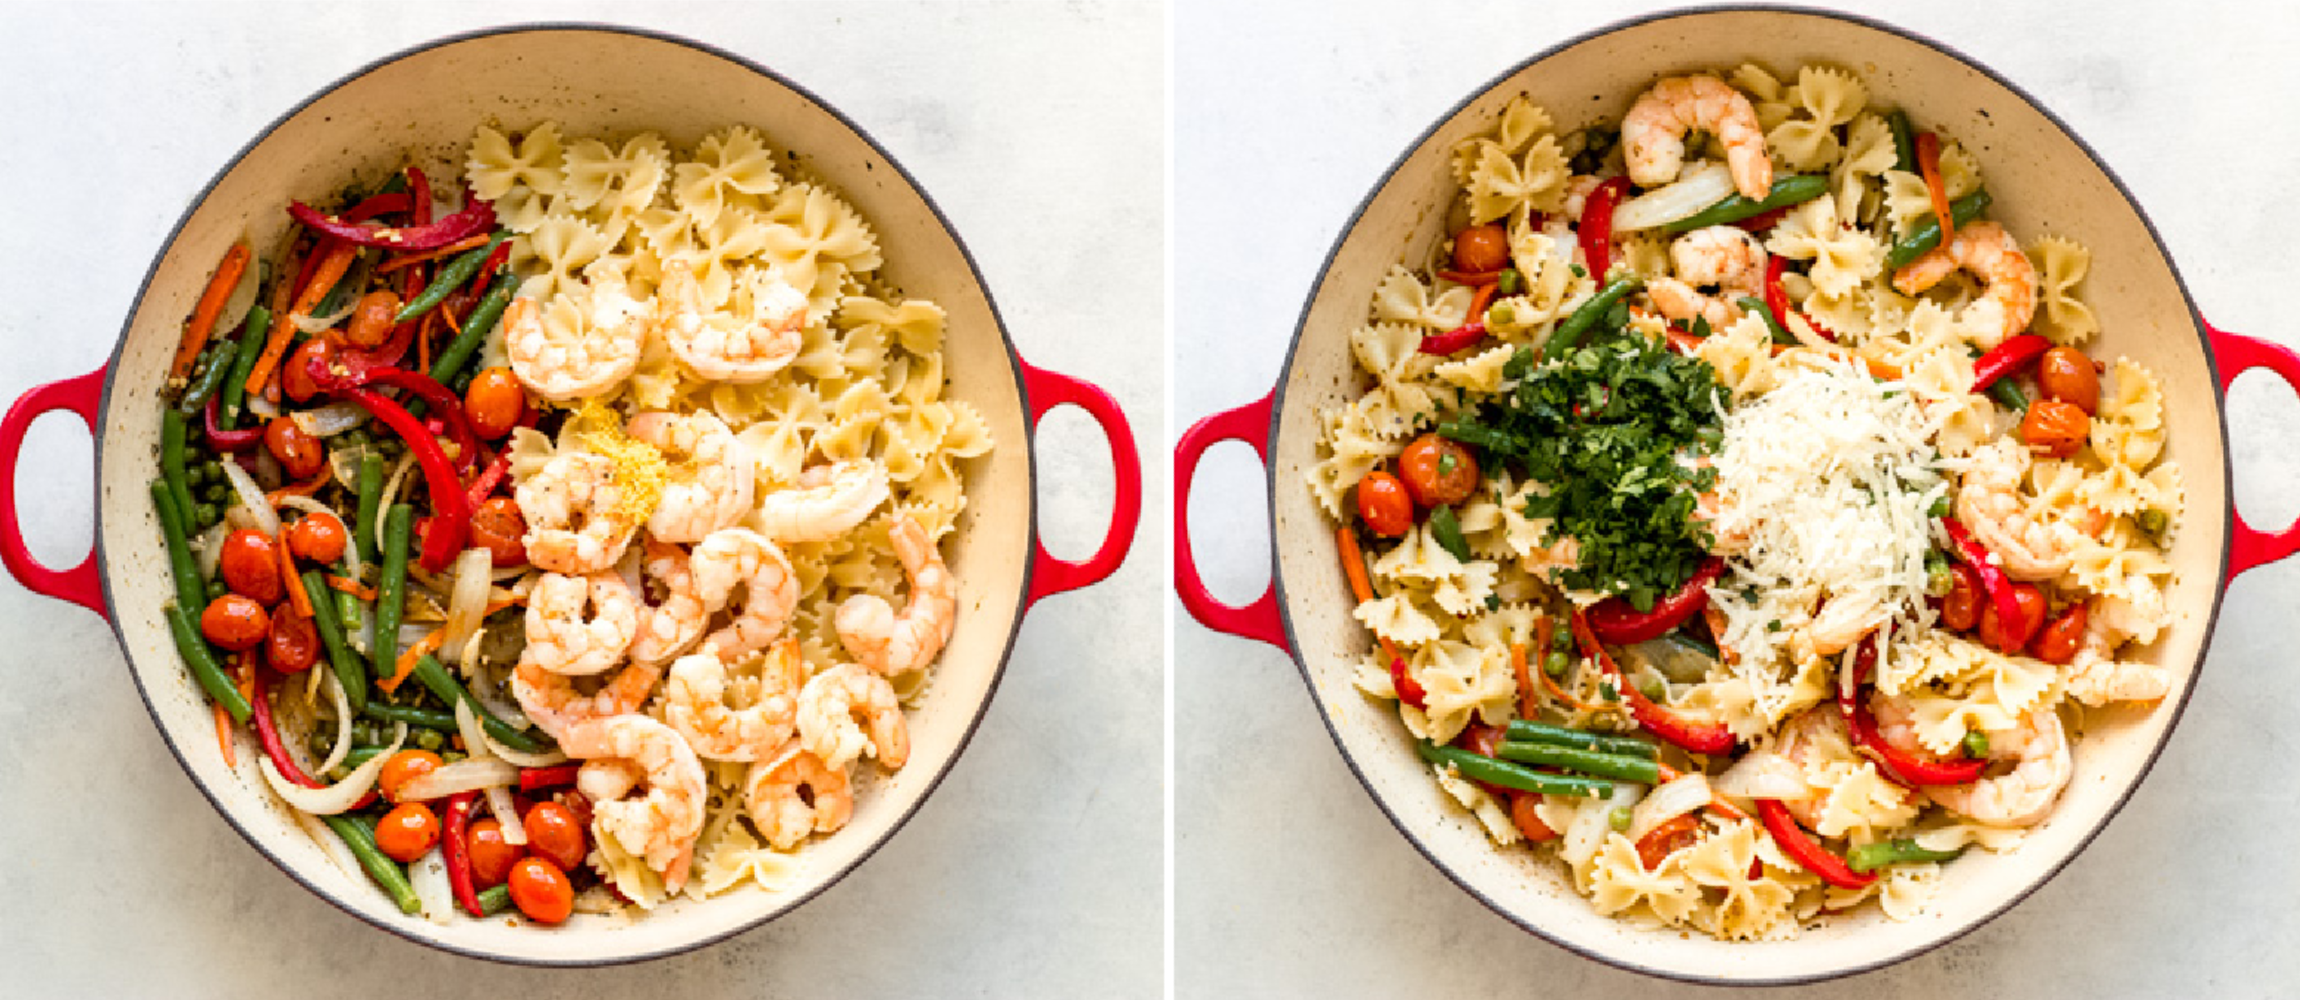 shrimp, pasta, and vegetables in pan